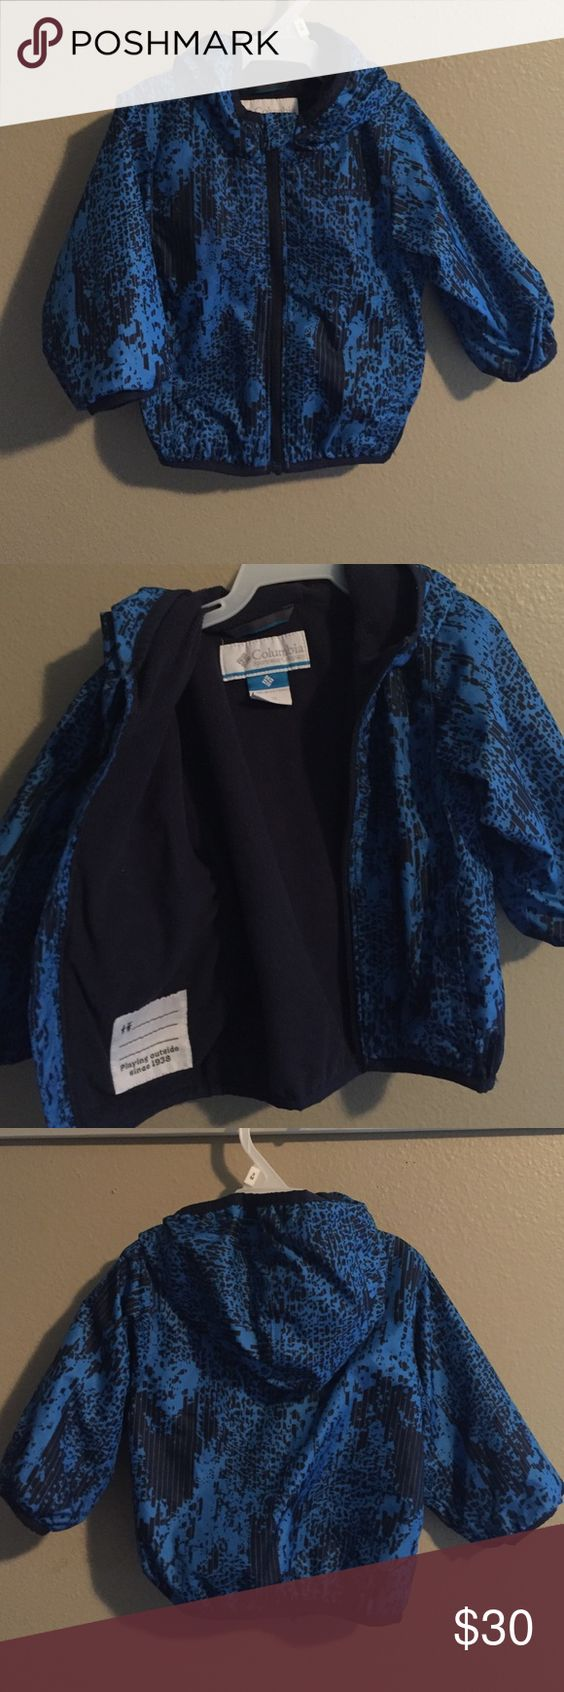 Columbia Sportswear Jacket EUC fleece lined windbreaker. Can stand up to light rain, but not heavy rain. Super cute! Columbia Sportswear Jackets & Coats